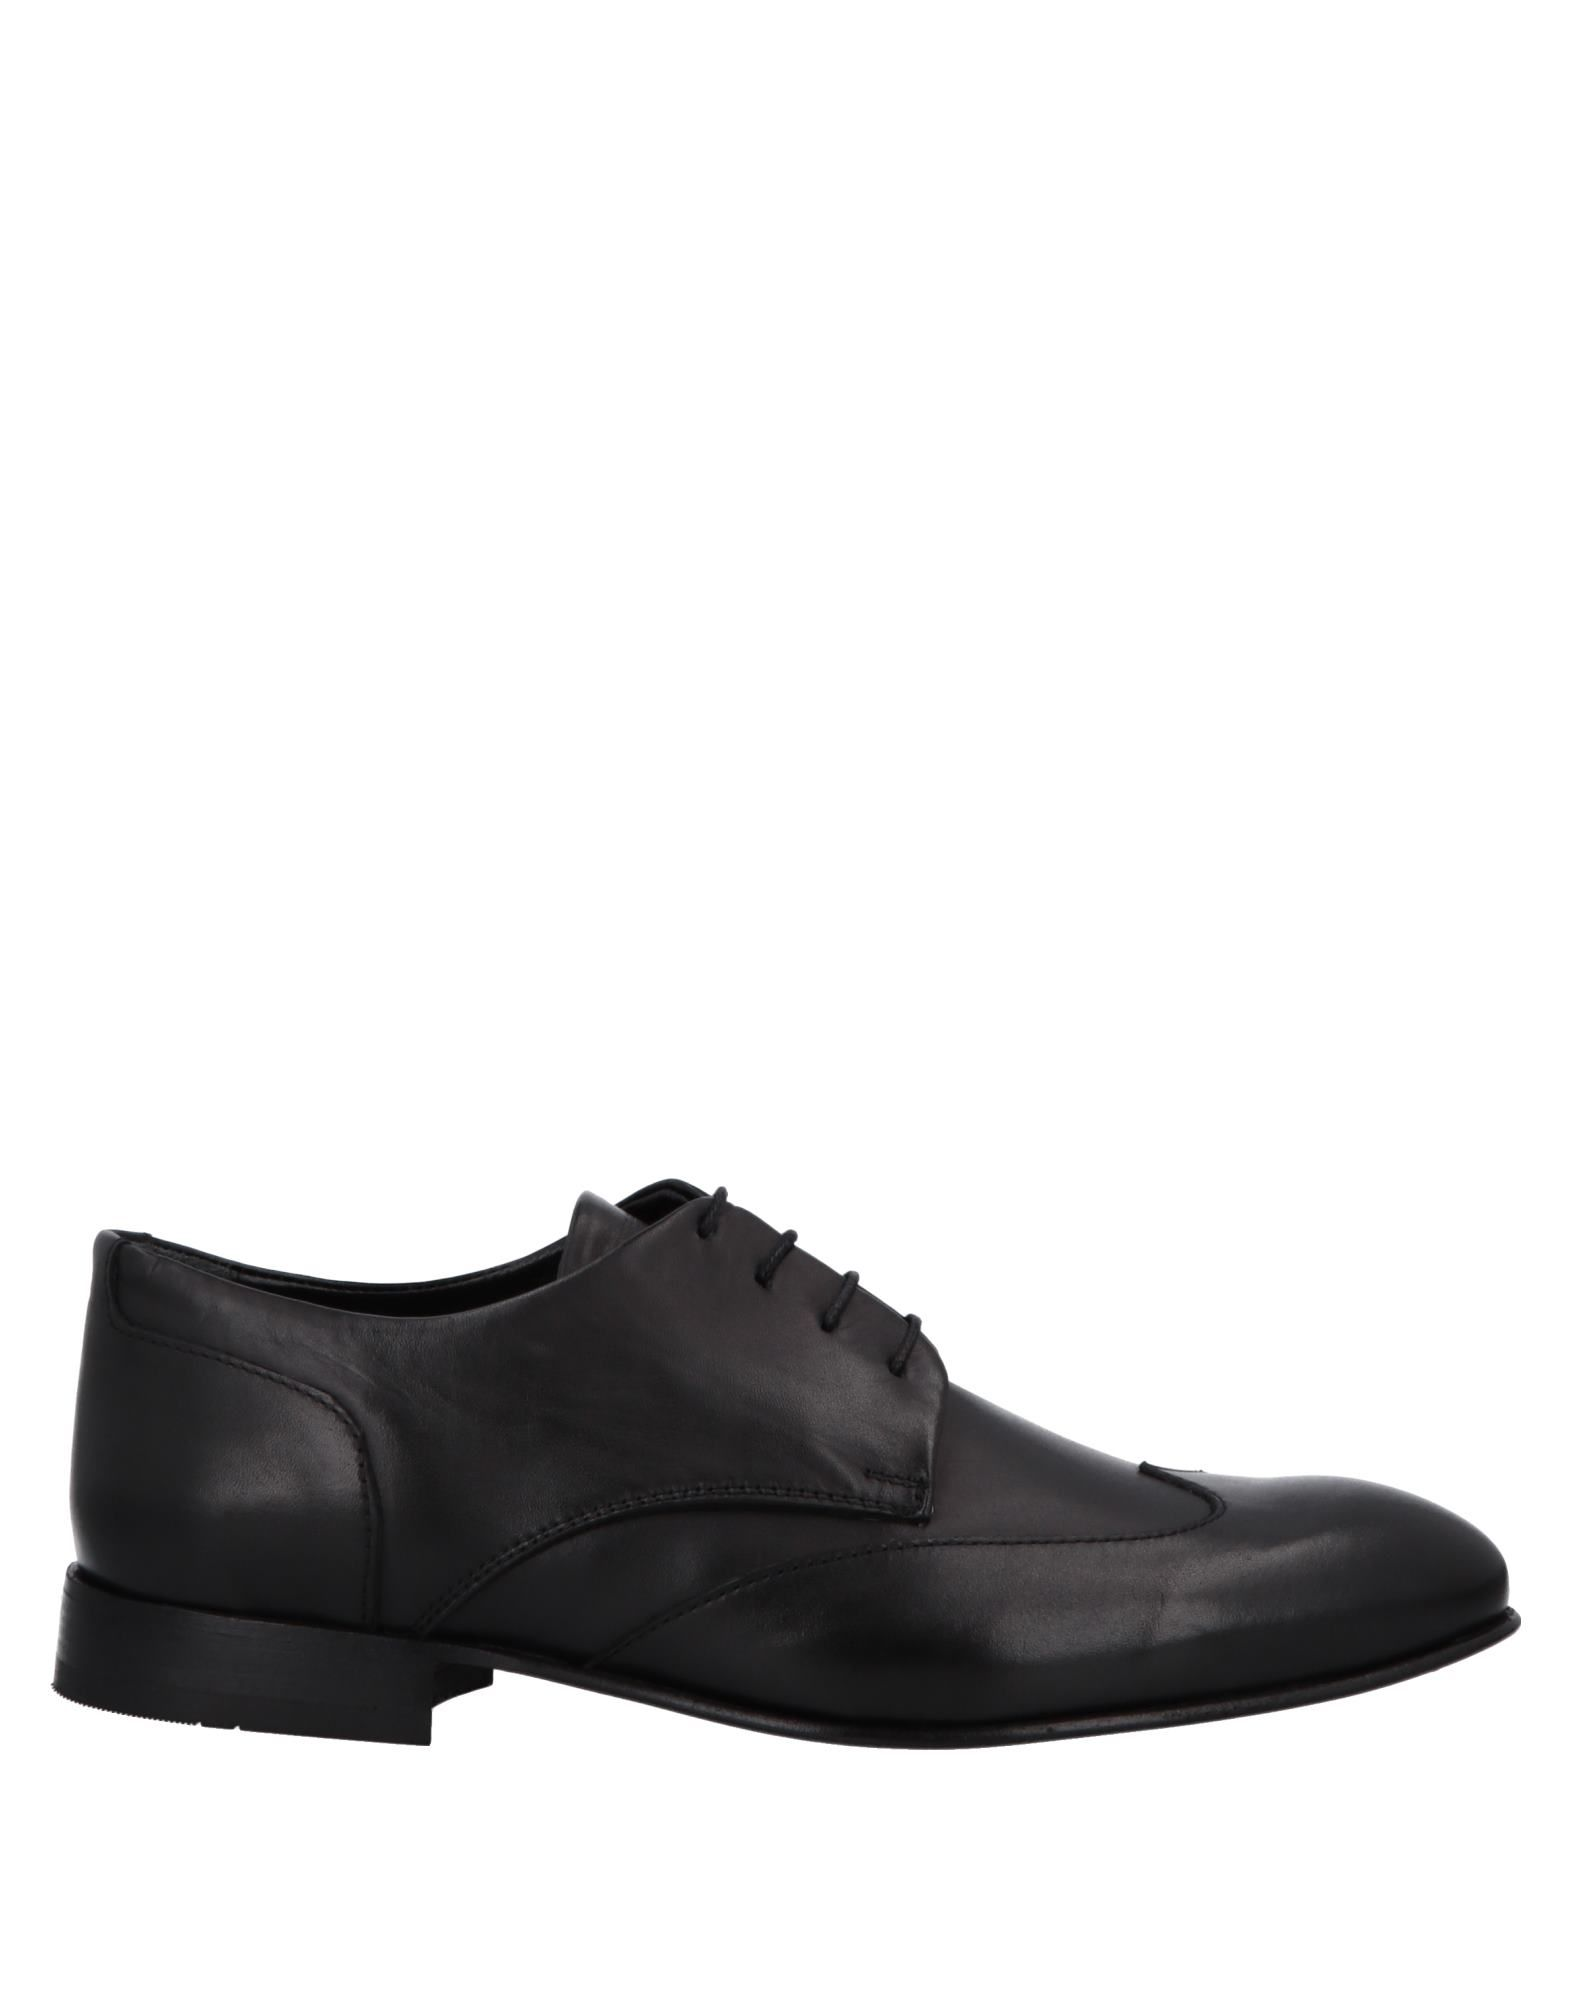 ALESSANDRO DELL'ACQUA Lace-Up Shoes in Black